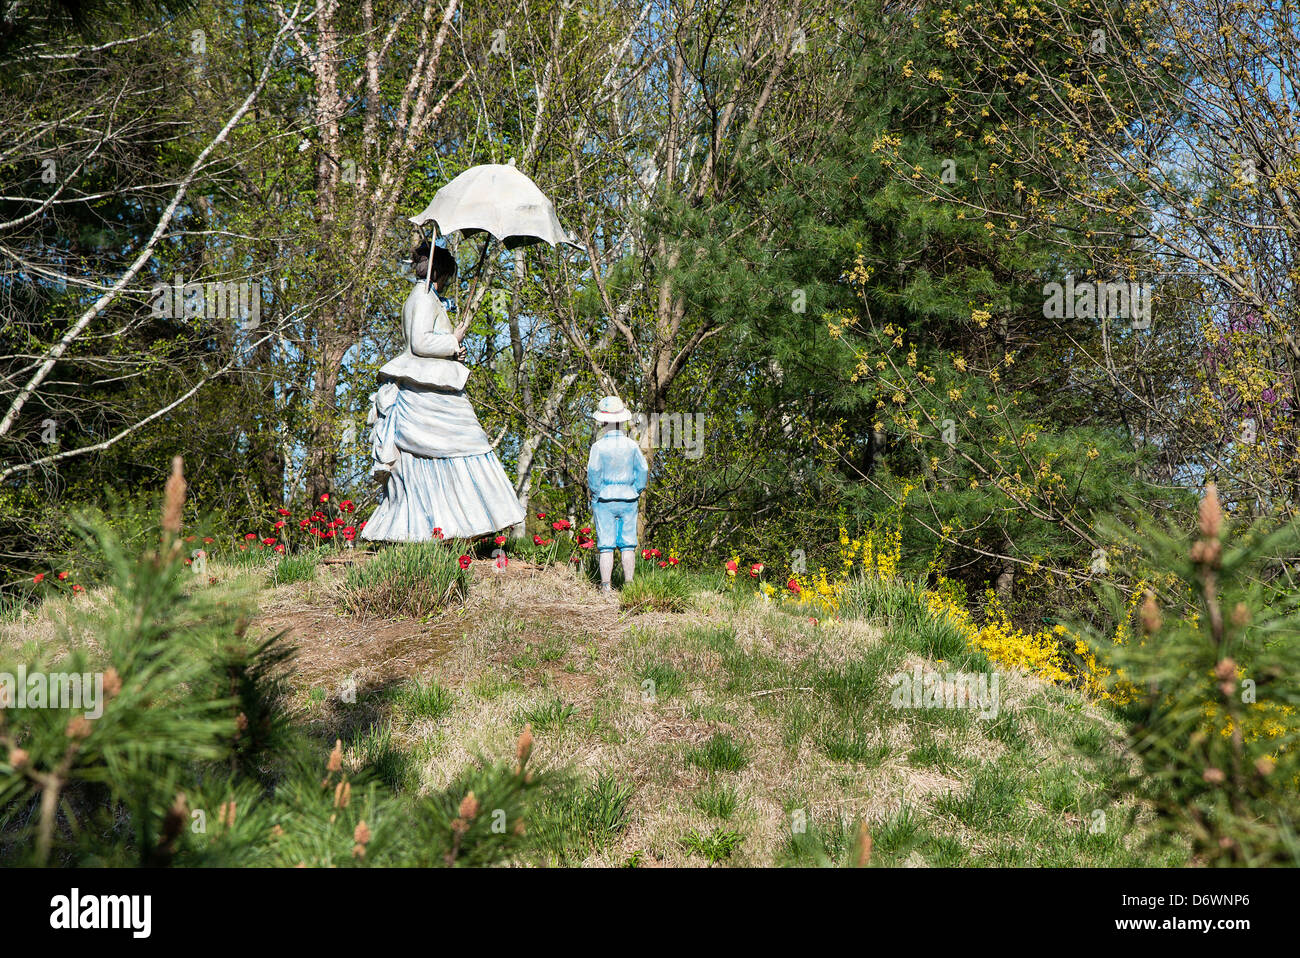 Tribute to Monet, Grounds for Sculpture, Hamilton, New Jersey, USA - Stock Image